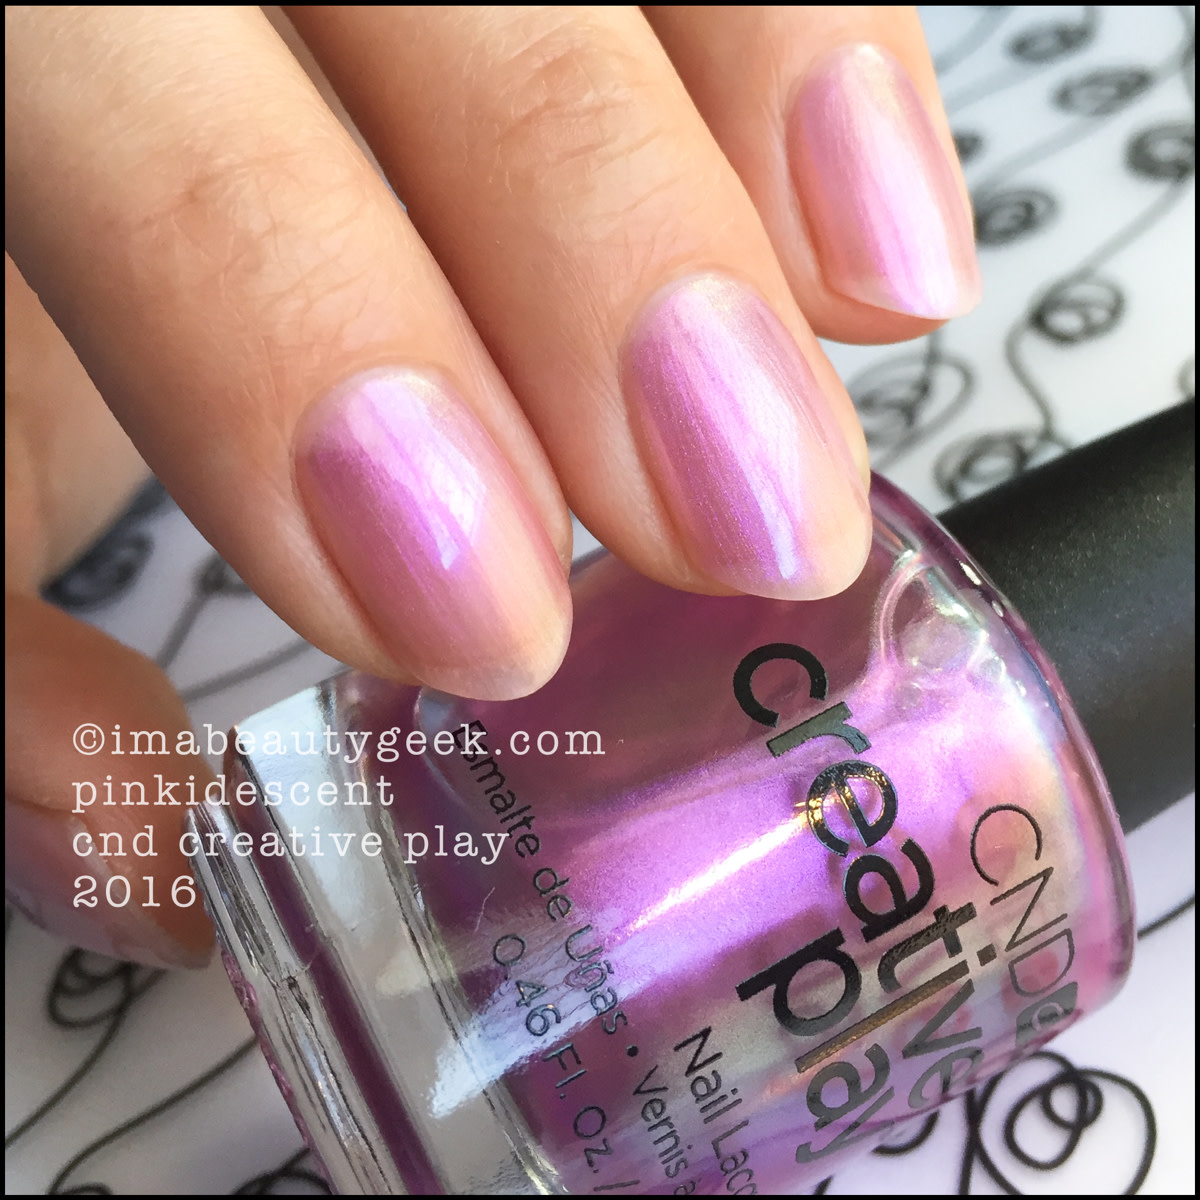 CND Creative Play Pinkidescent_CND Creative Play Nail Polish Swatches